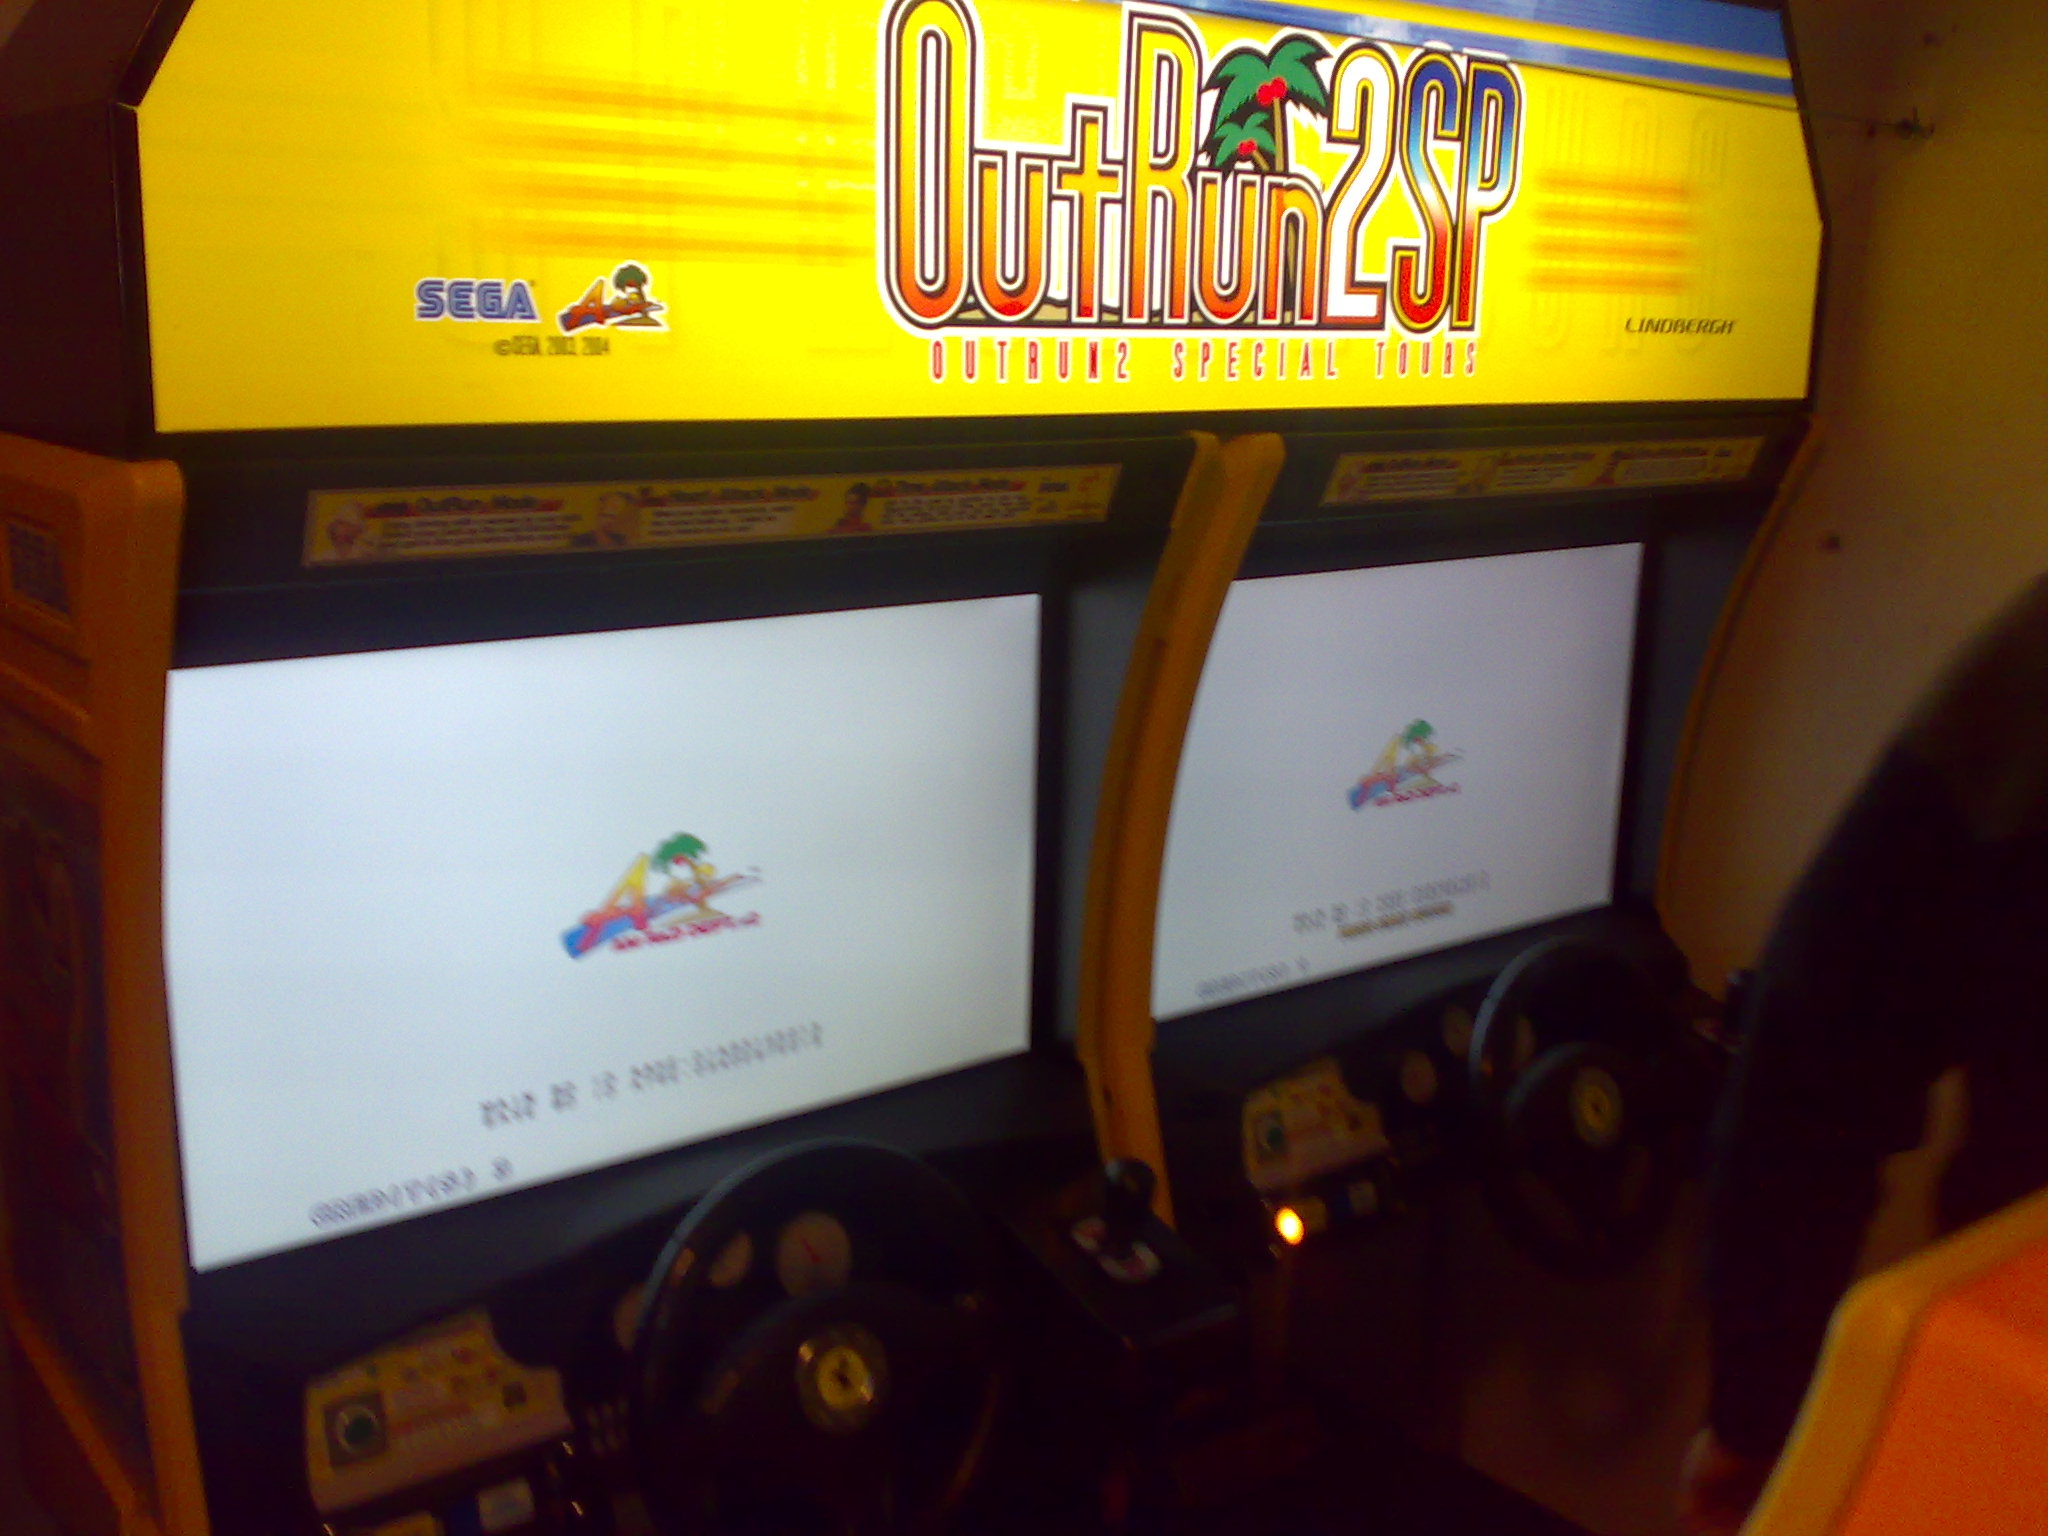 Daytona Usa Converting A Twin Cabinet Correctly Arcade Game Wiring Diagram He Also Happens To Own These